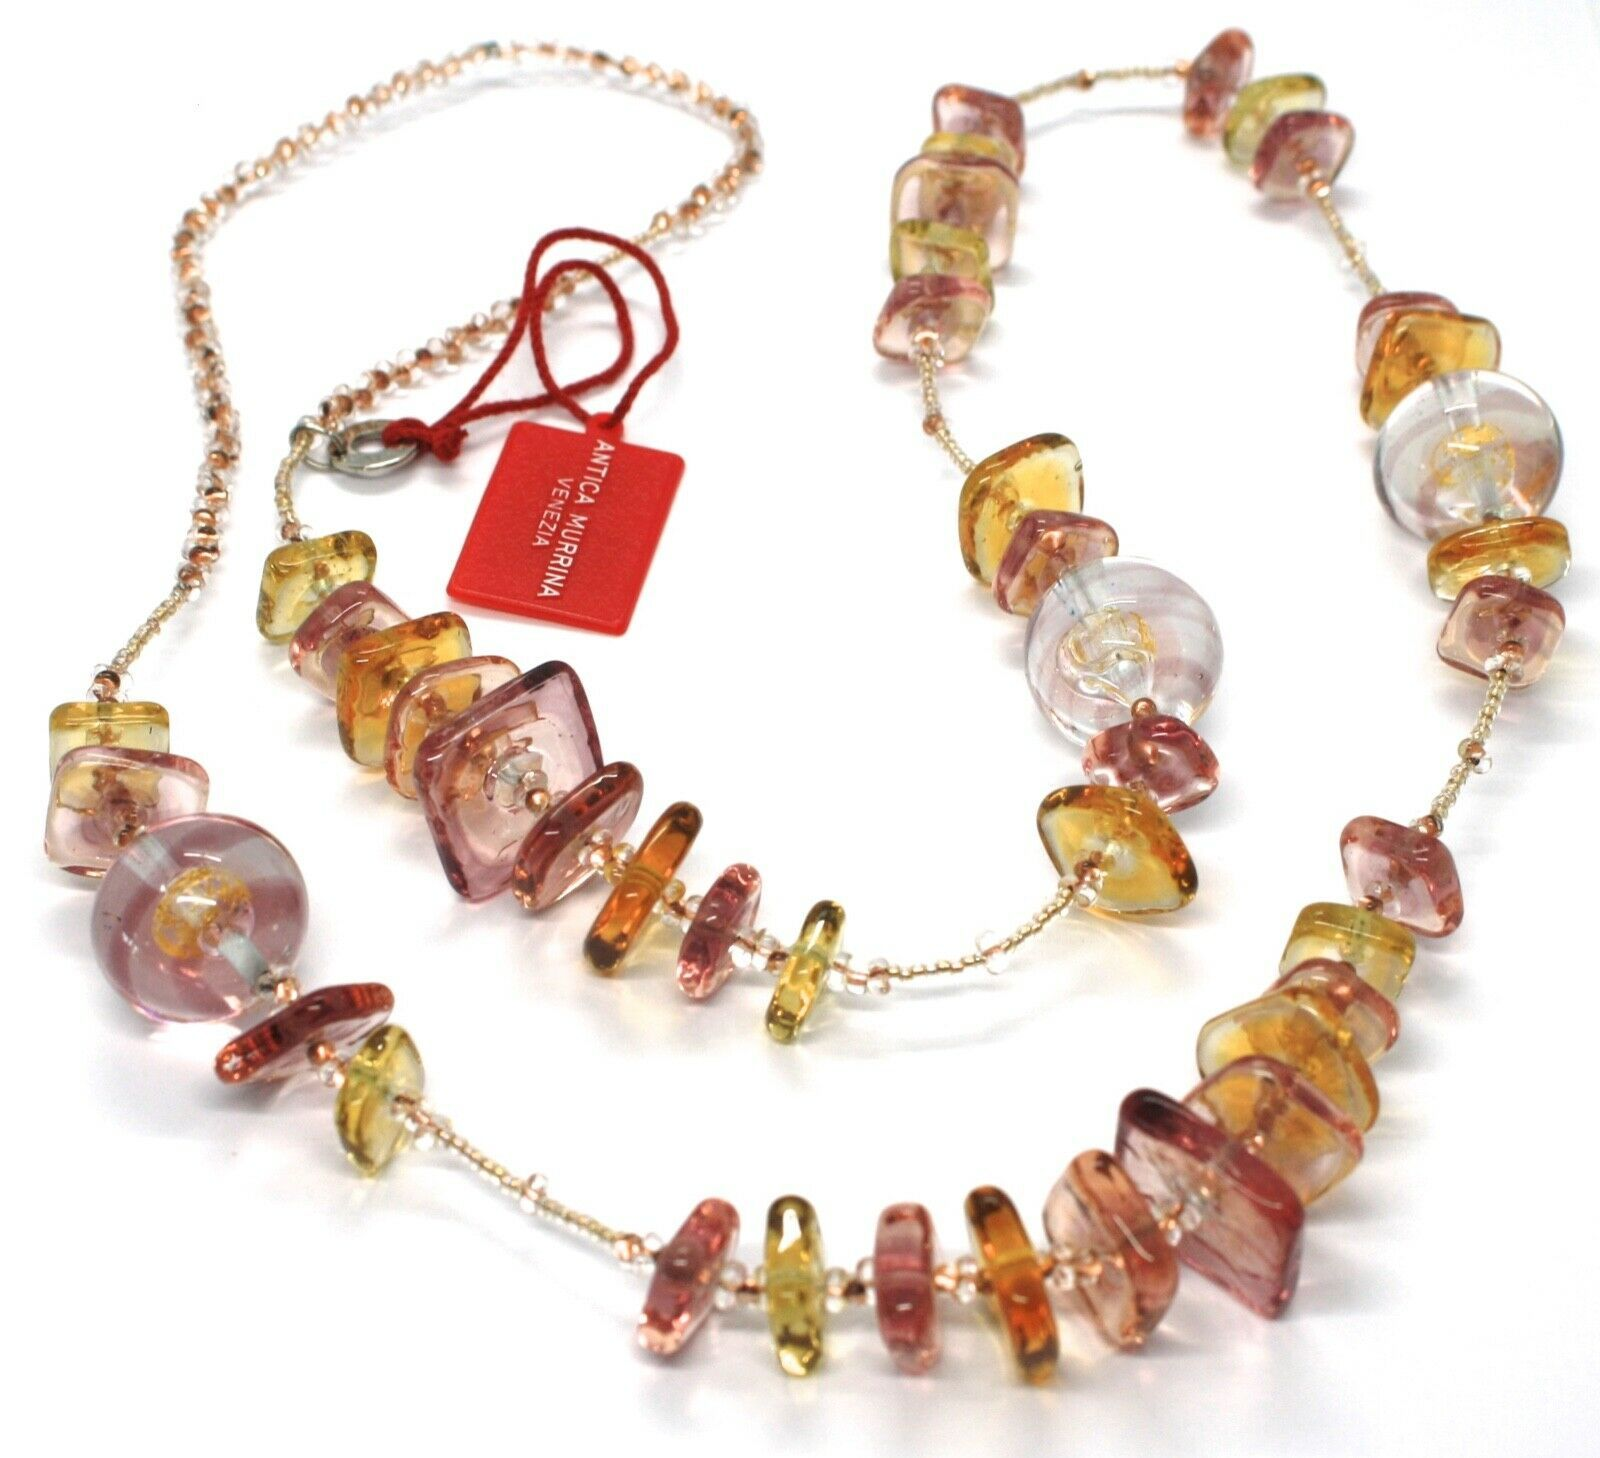 Necklace Antique Murrina, CO714A99, Pink, 90 cm, Squares Spheres, Glass Murano